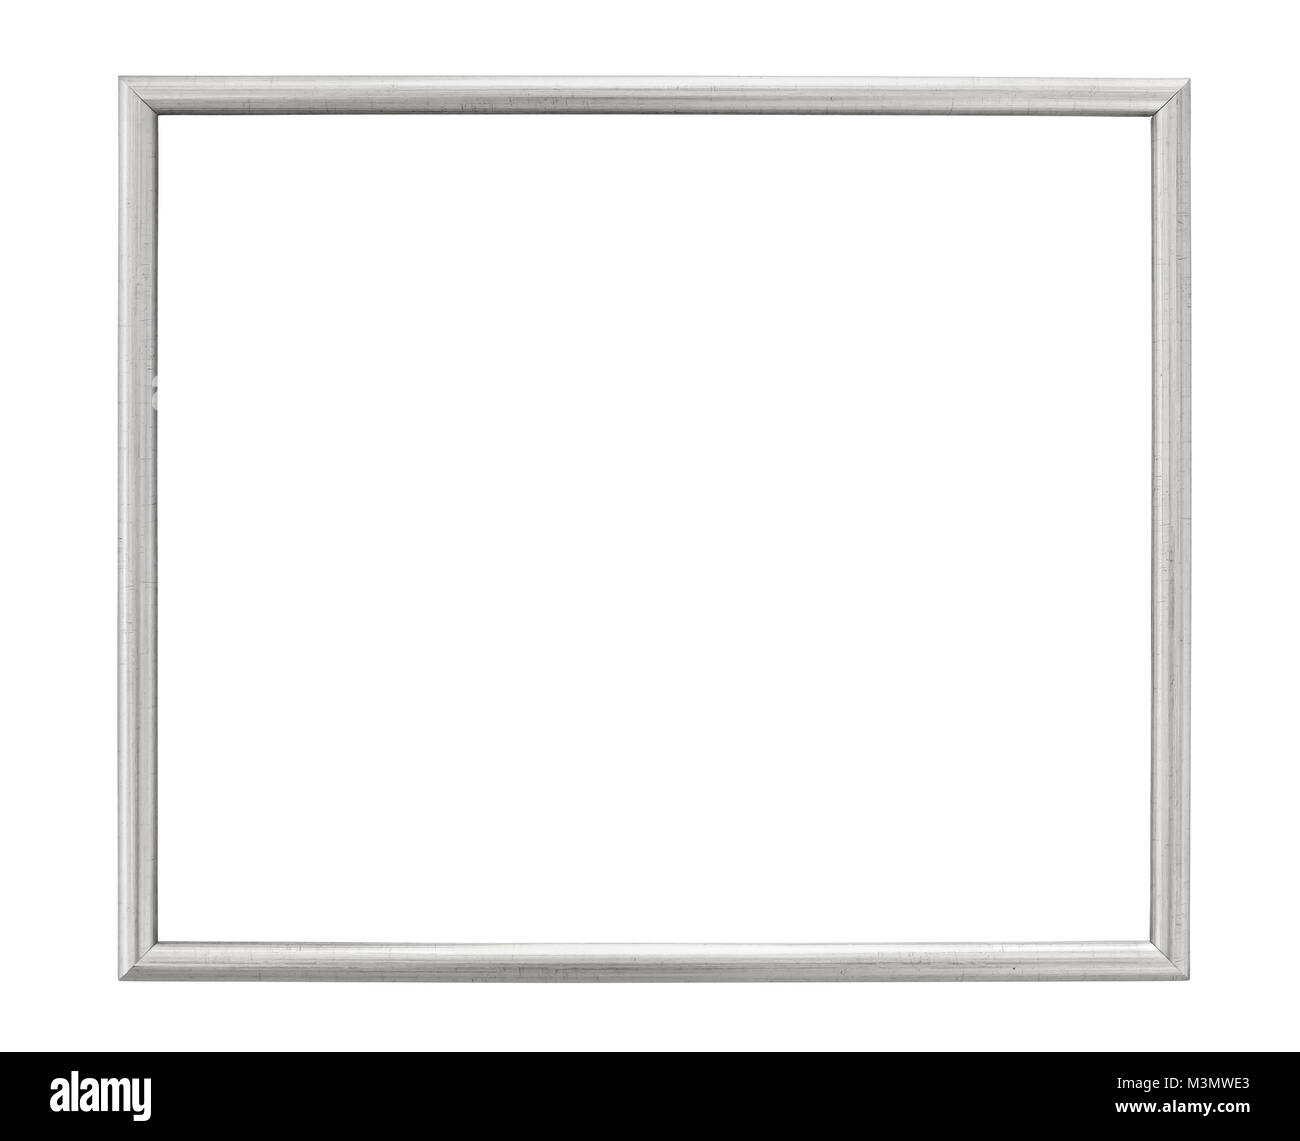 Silver colored picture frame isolated on white background with clipping path Stock Photo